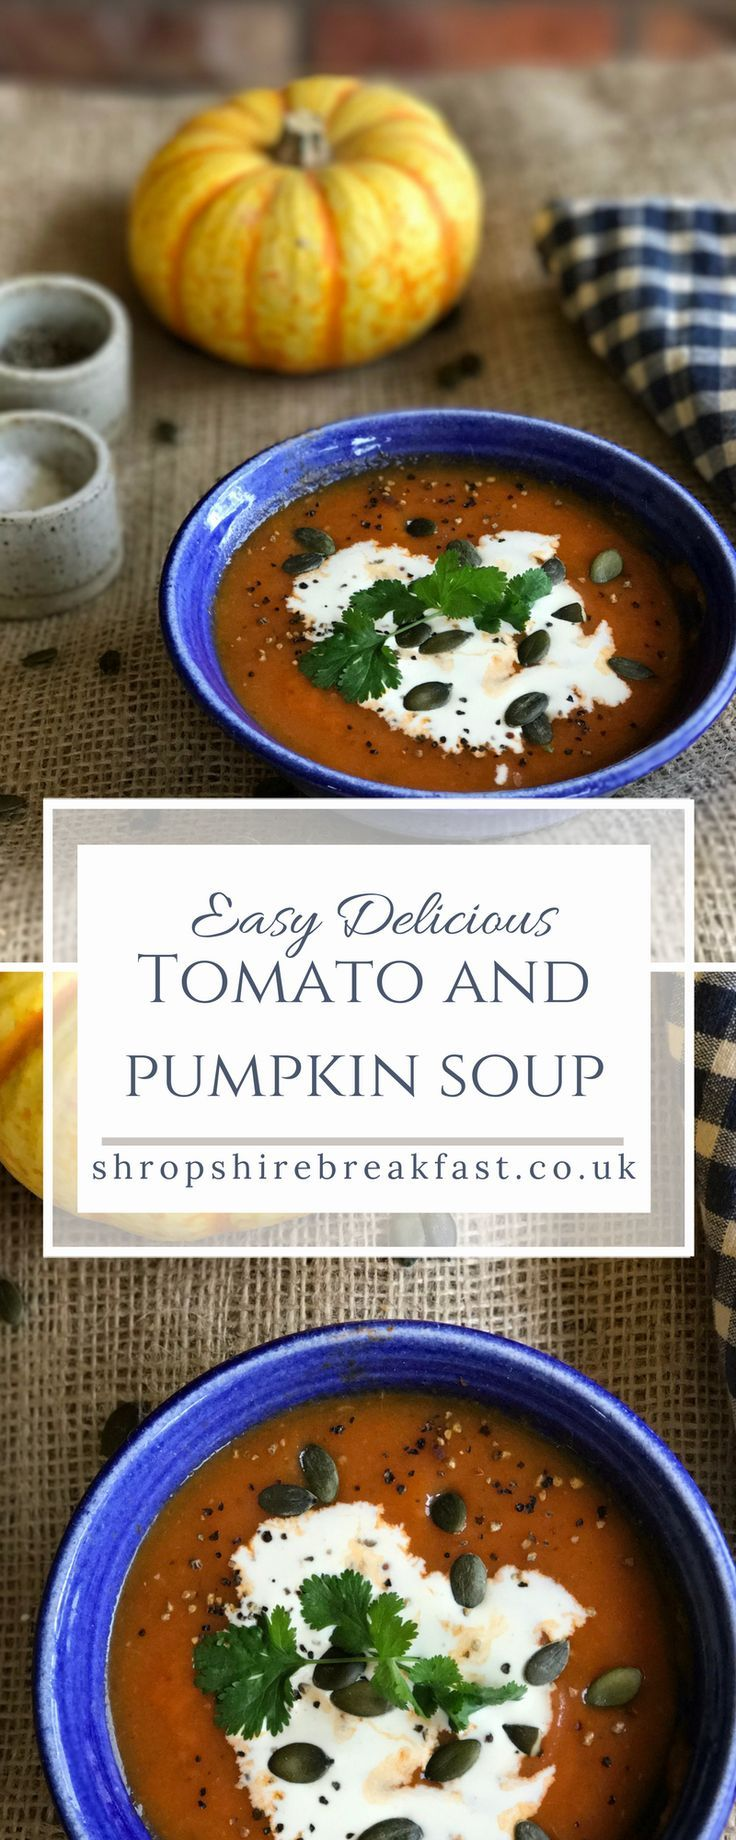 Make this easy, healthy tomato and pumpkin soup recipe this autumn. It's low calorie and low fat at only 70 calories per bowl. Make it in the summer with your glut of courgettes or marrows. My favourite fast day recipe! #healthy #recipe